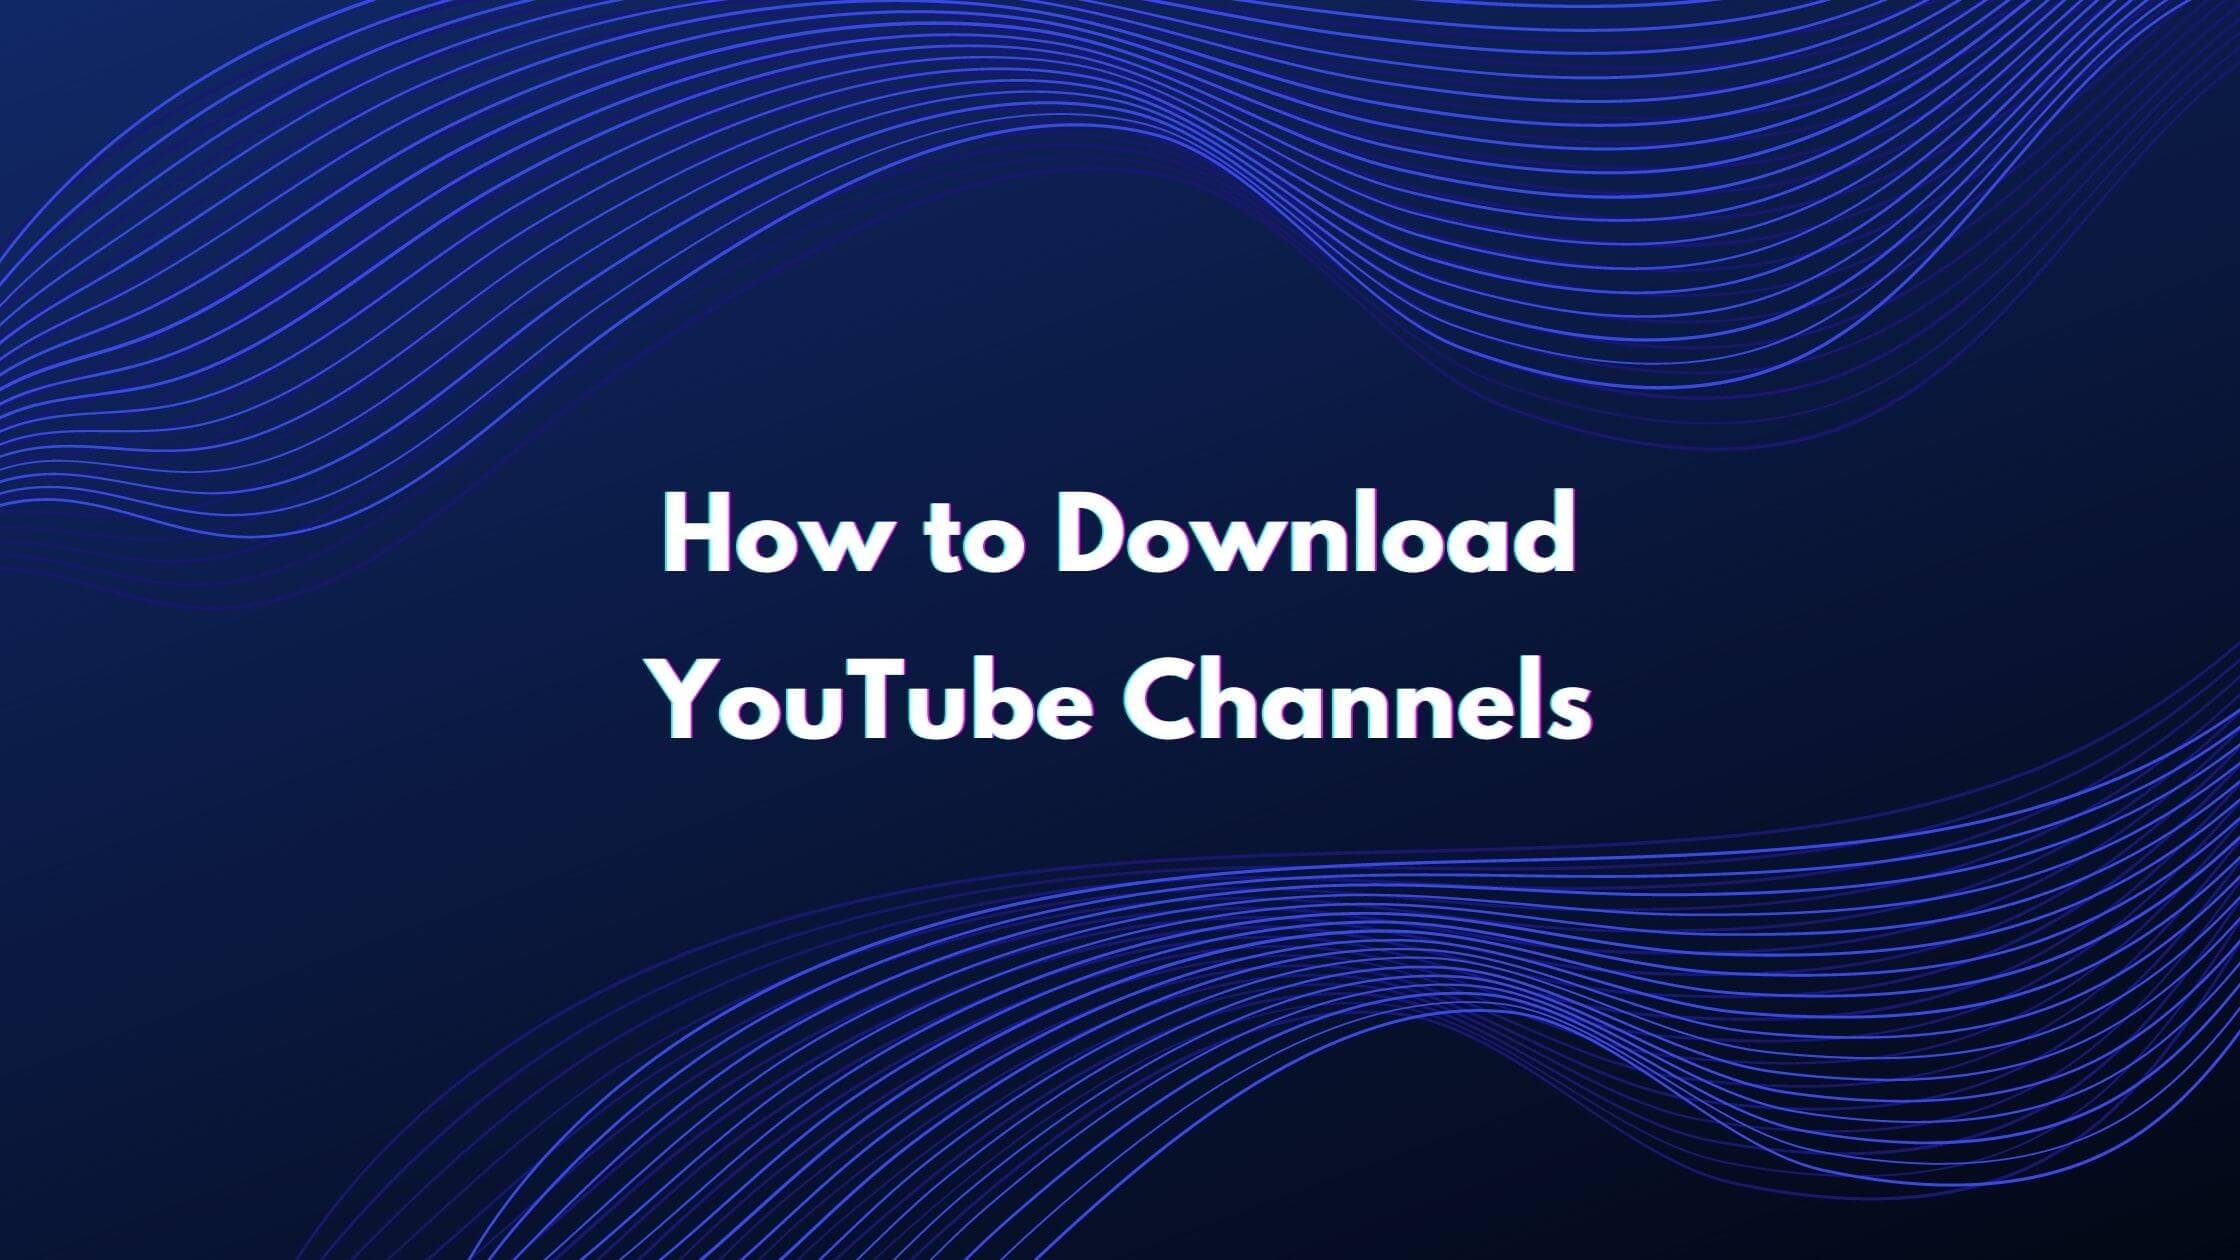 How to Download Youtube Channel Videos